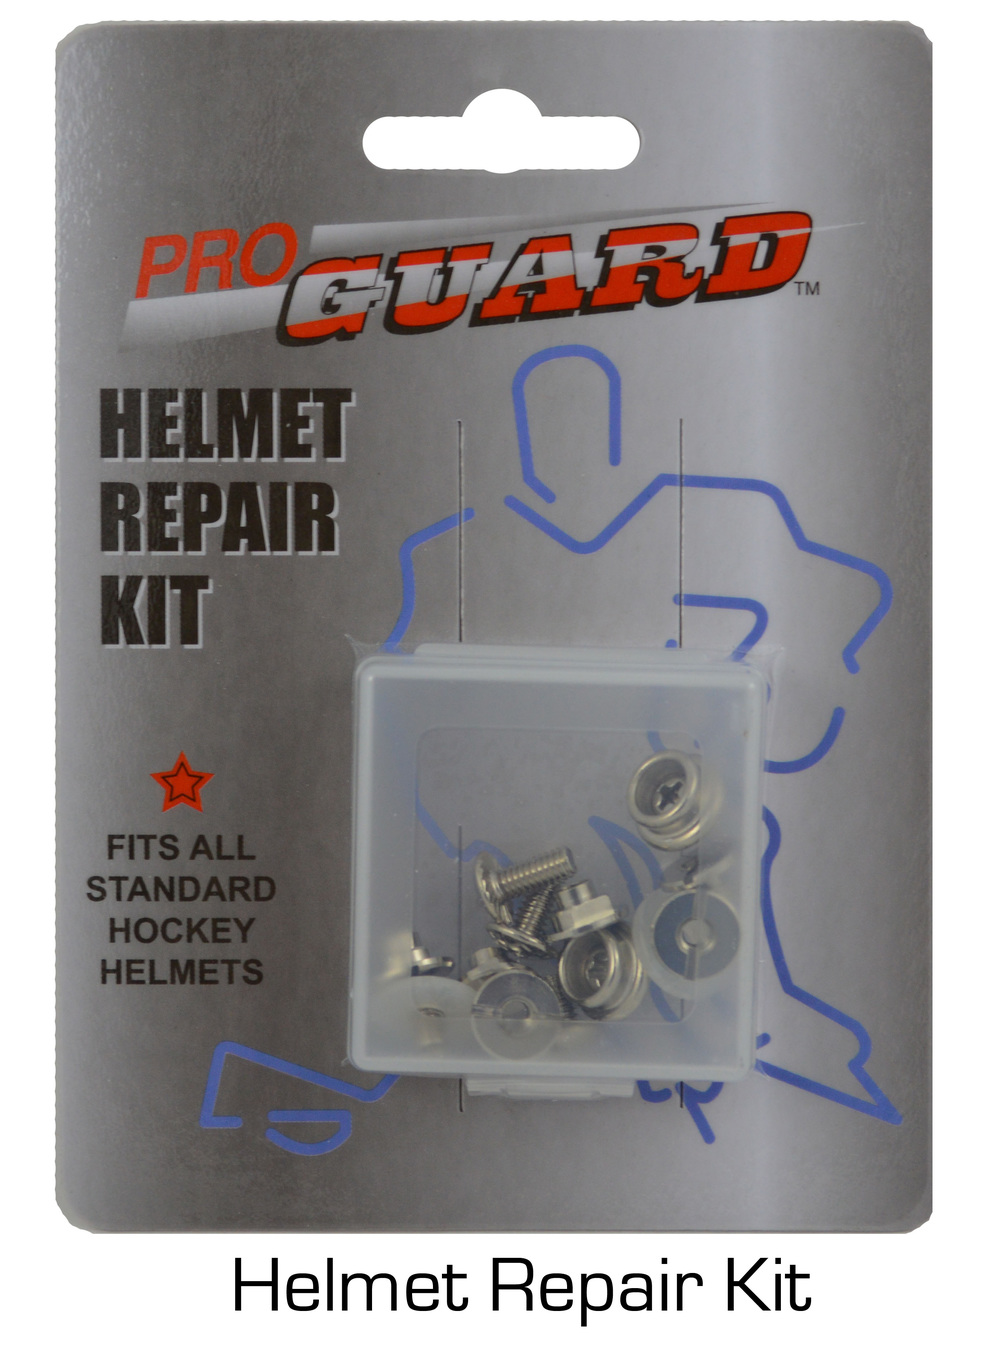 Helmet Repair Kit